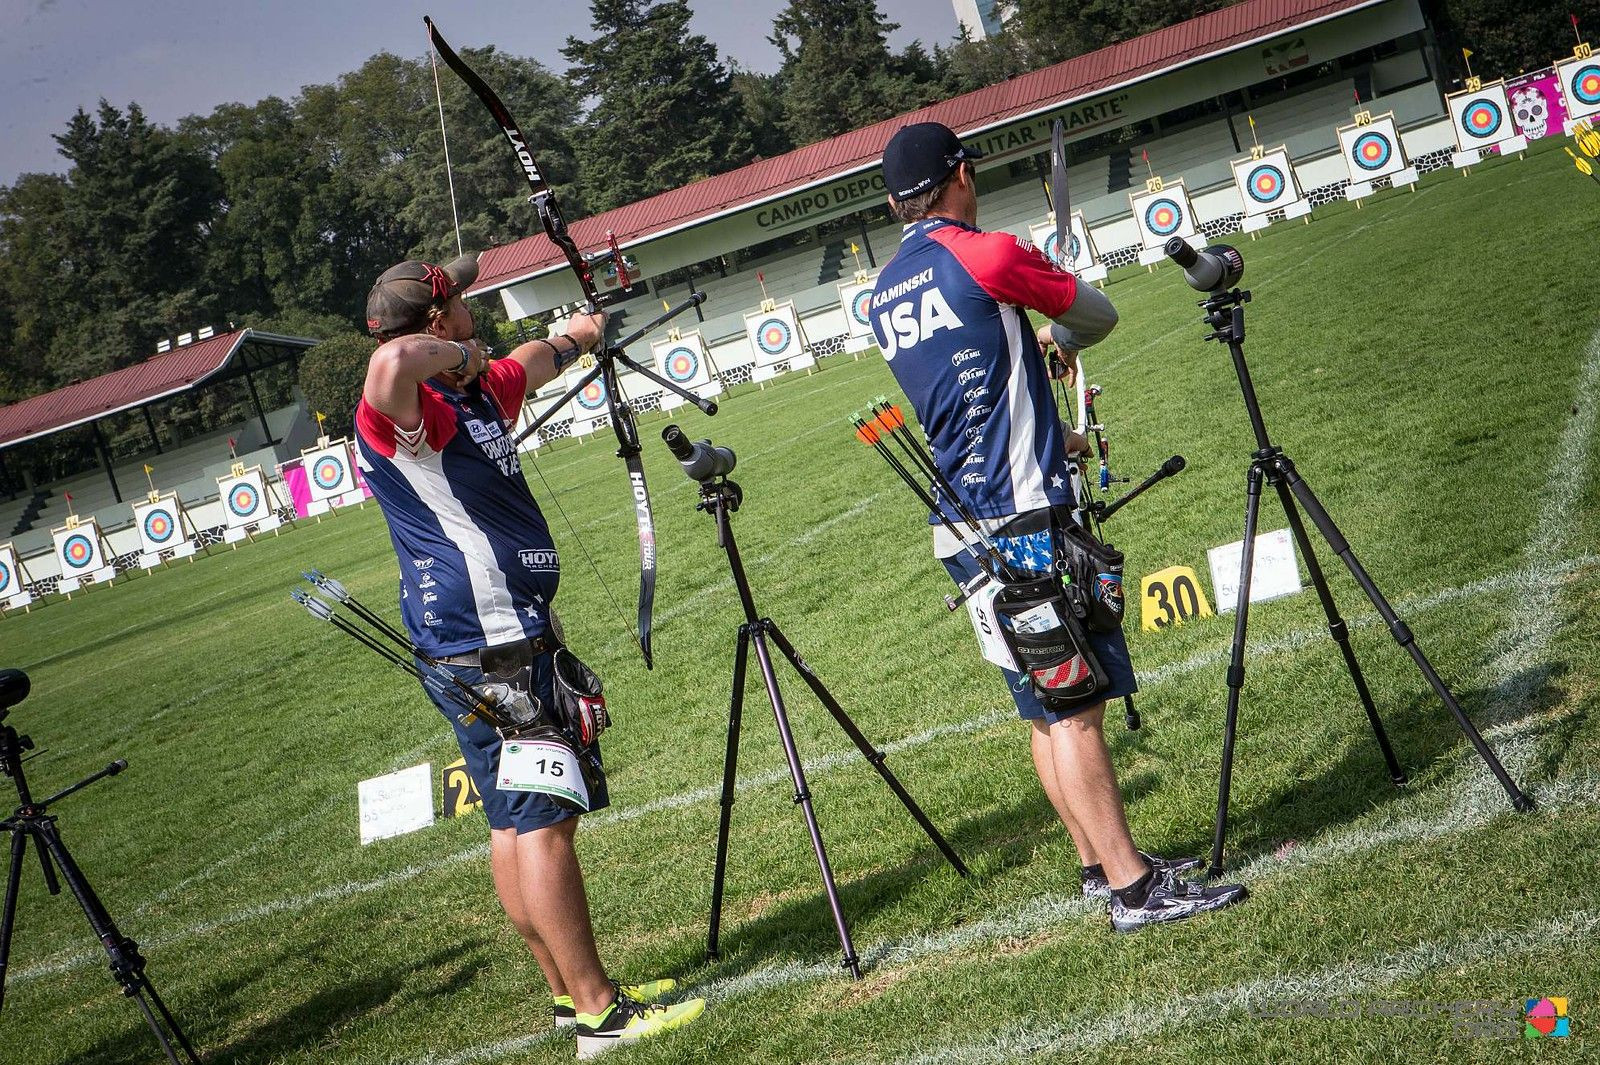 Rio 2016 bronze medallist crashes out of World Archery Championships